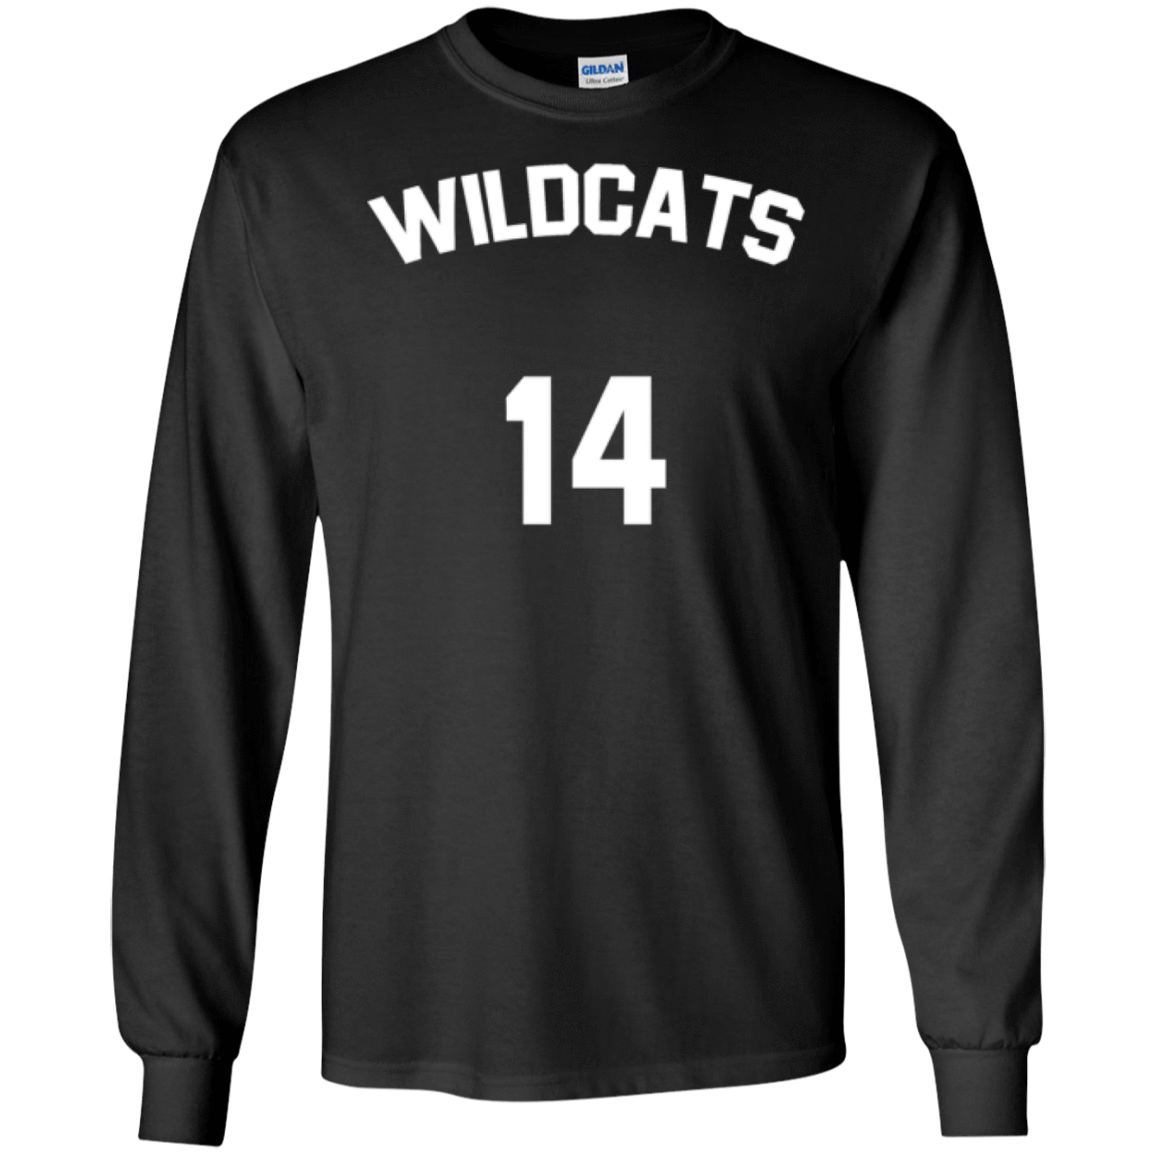 a4a6717ac Troy Bolton Wildcats Long Sleeve Shirt 14 - Jersey Champs